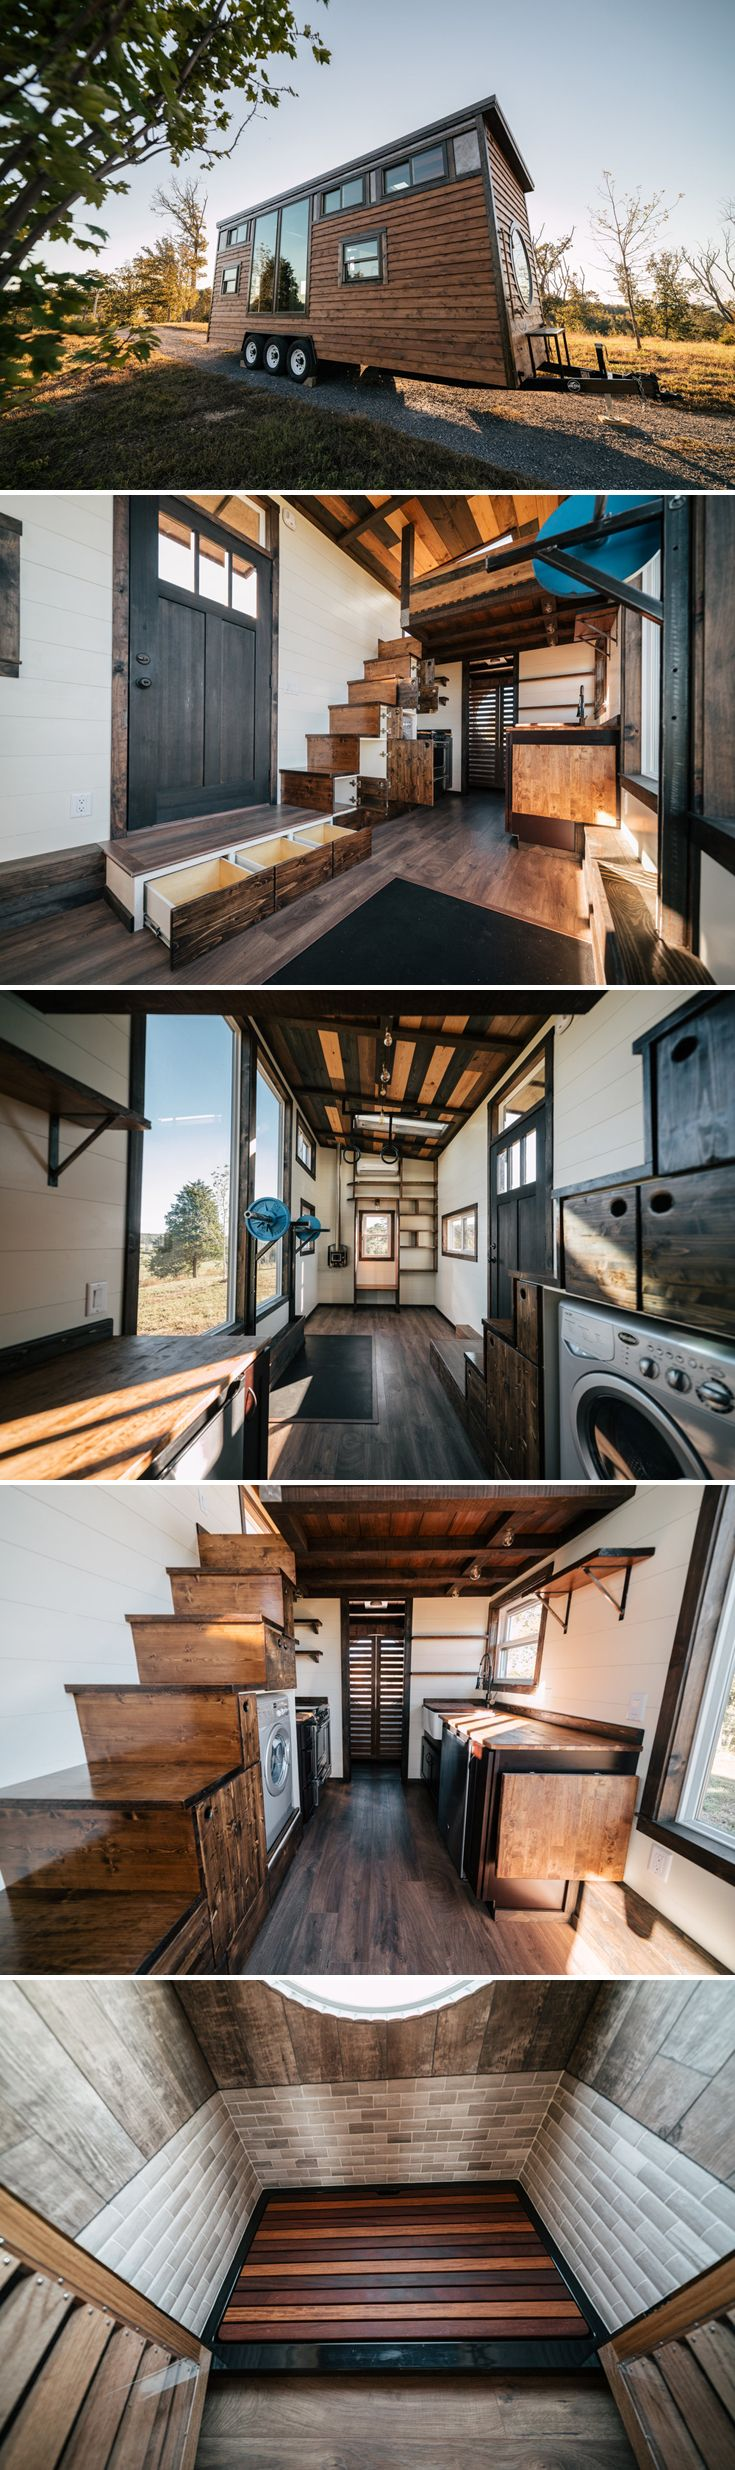 Designed to take full advantage of panoramic views, the The Silhouette by Wind River Tiny Homes has two large fixed windows and an oversized round window.